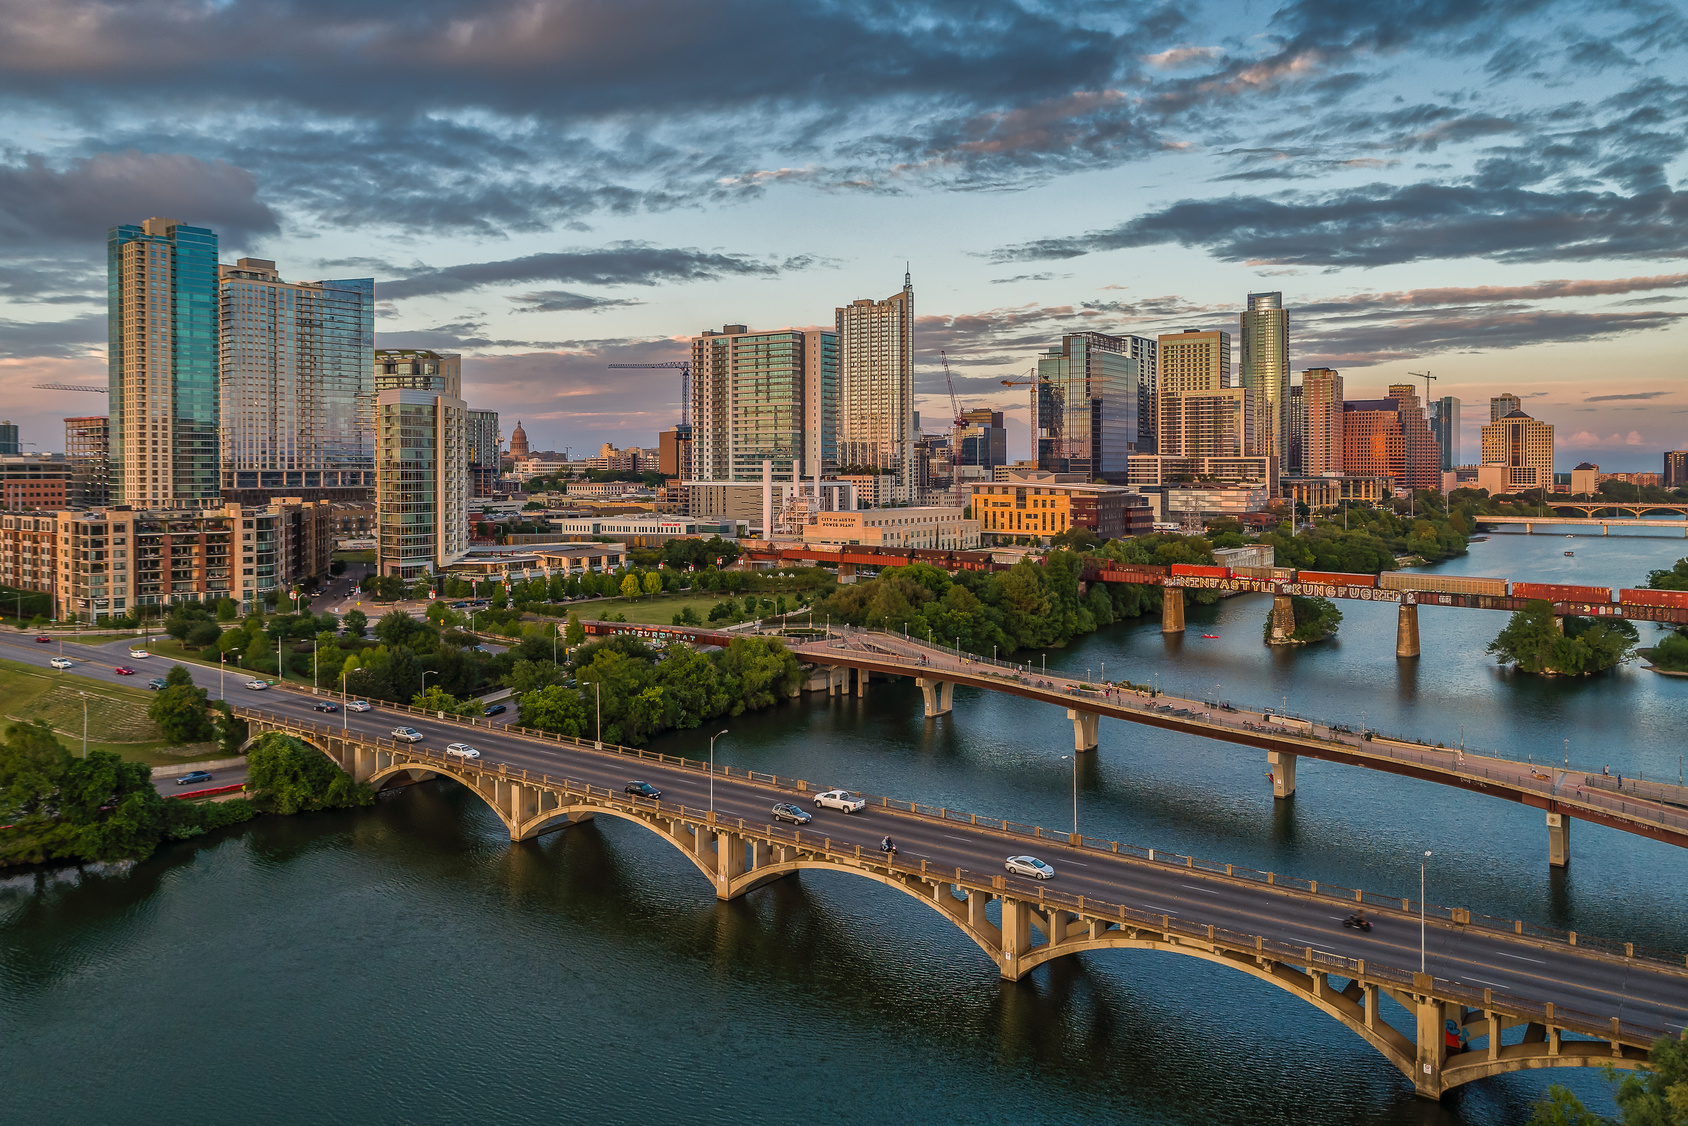 Austin, TX is reated one of the best places to live in the US.